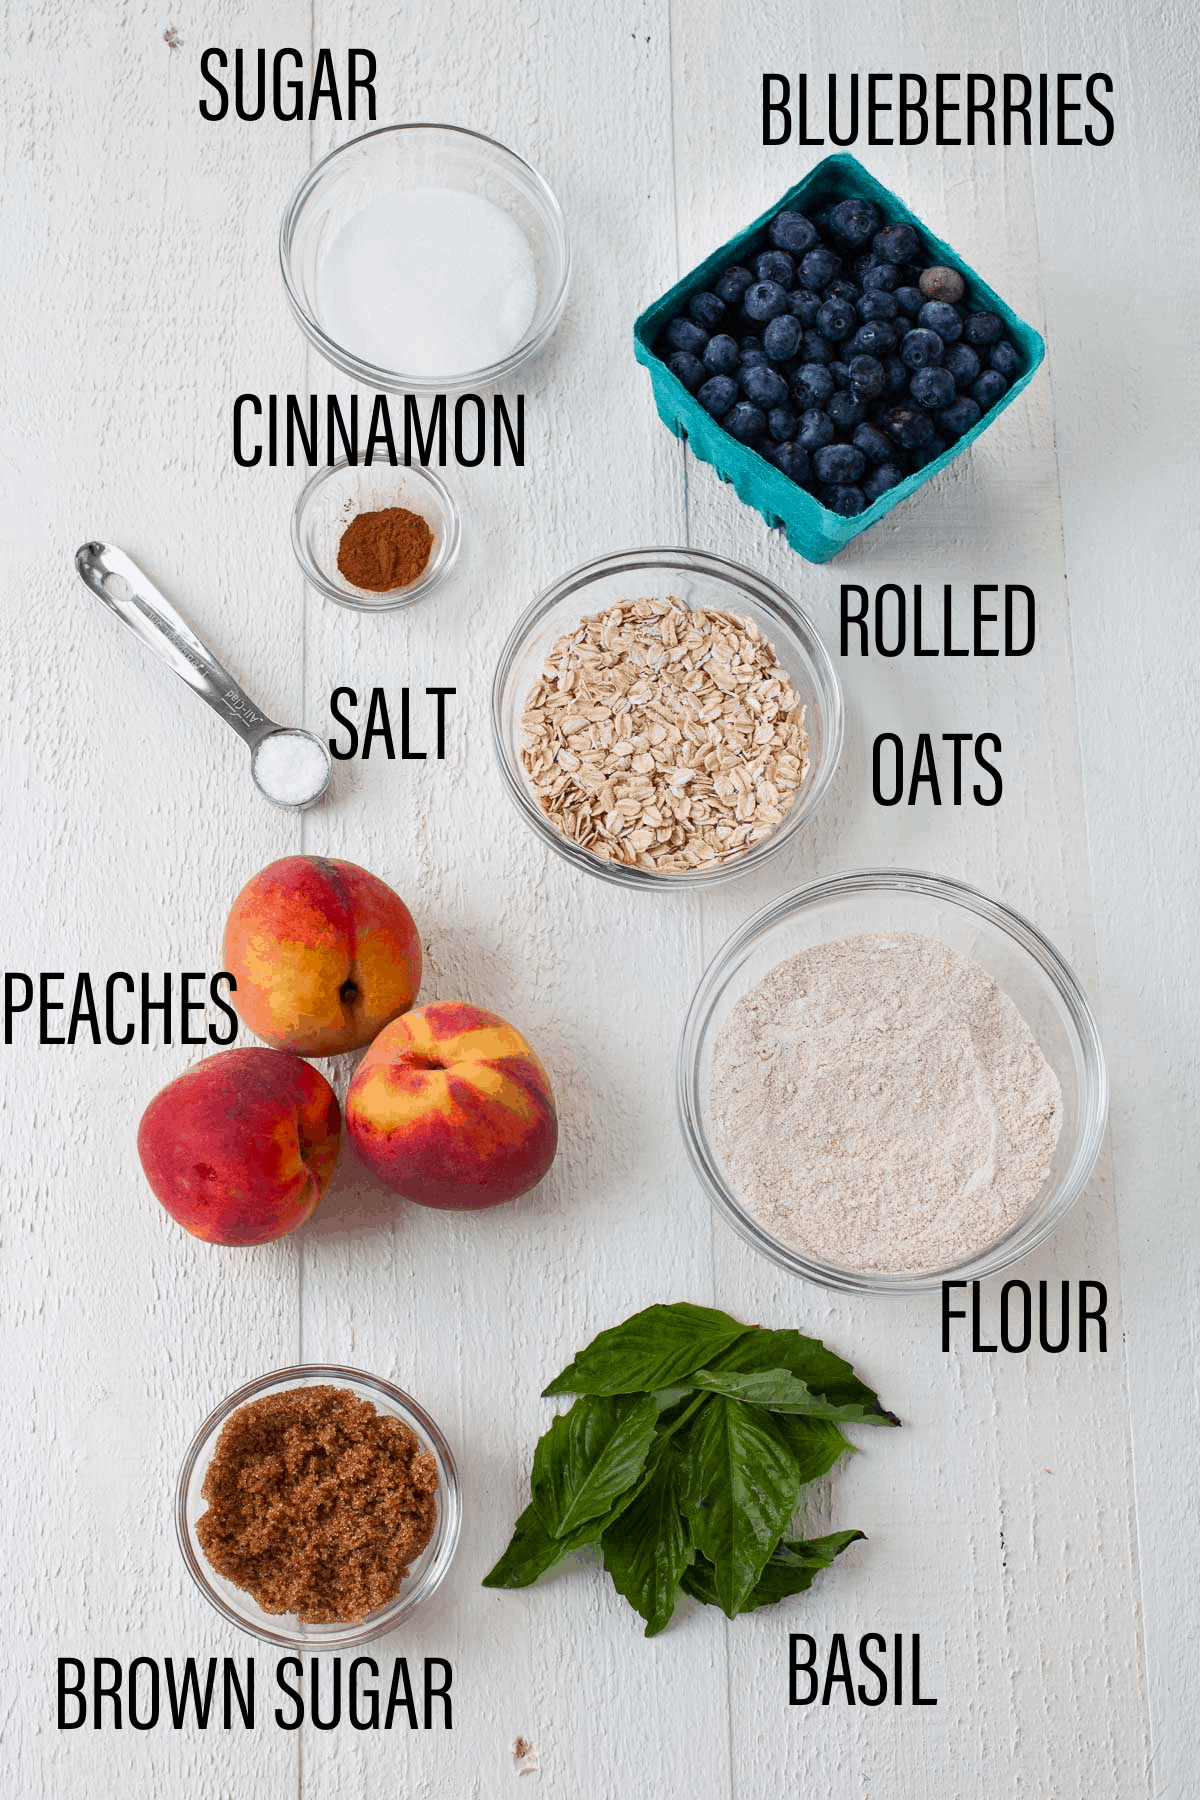 blueberries, peaches, basil laid out on counter with sugar, cinnamon, flour and brown sugar in bowls